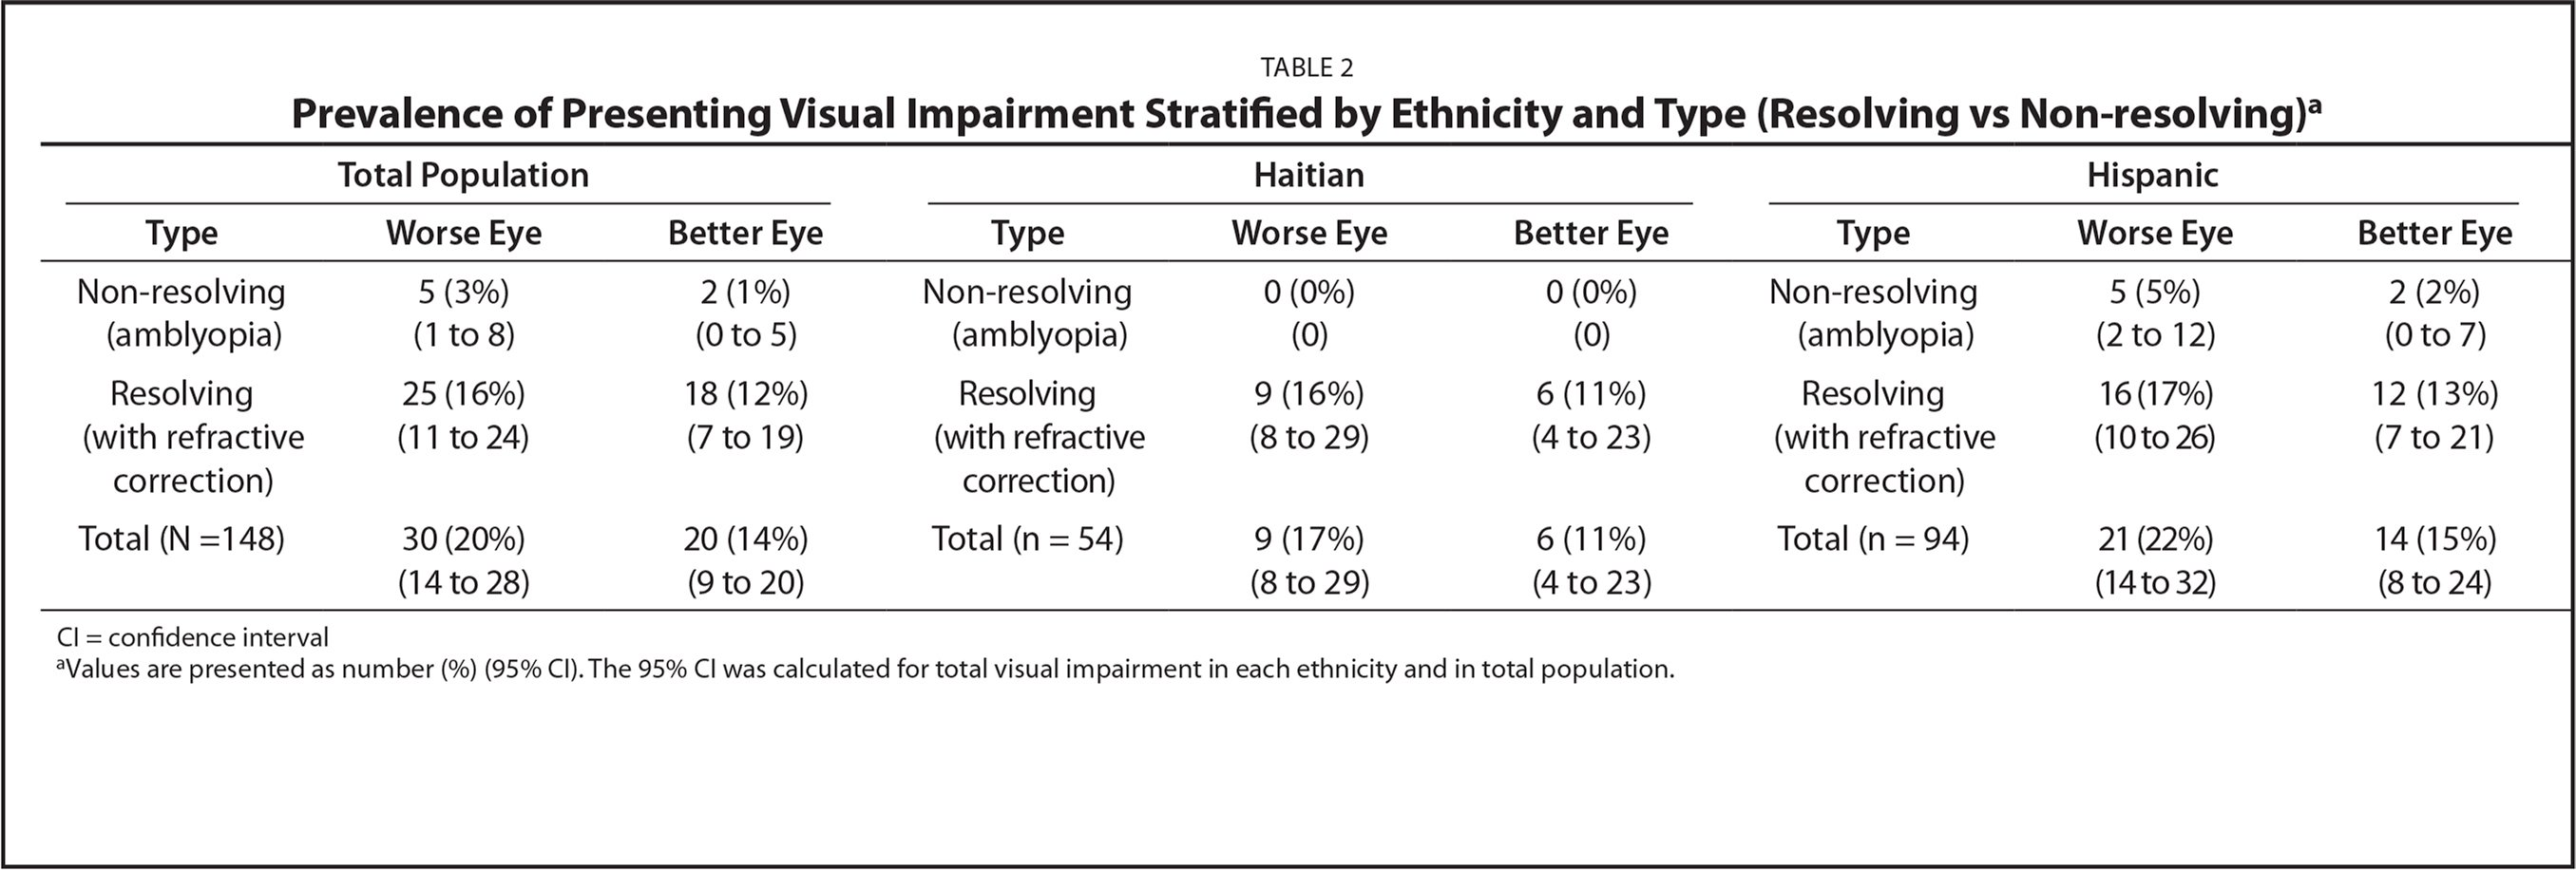 Prevalence of Presenting Visual Impairment Stratified by Ethnicity and Type (Resolving vs Non-resolving)a